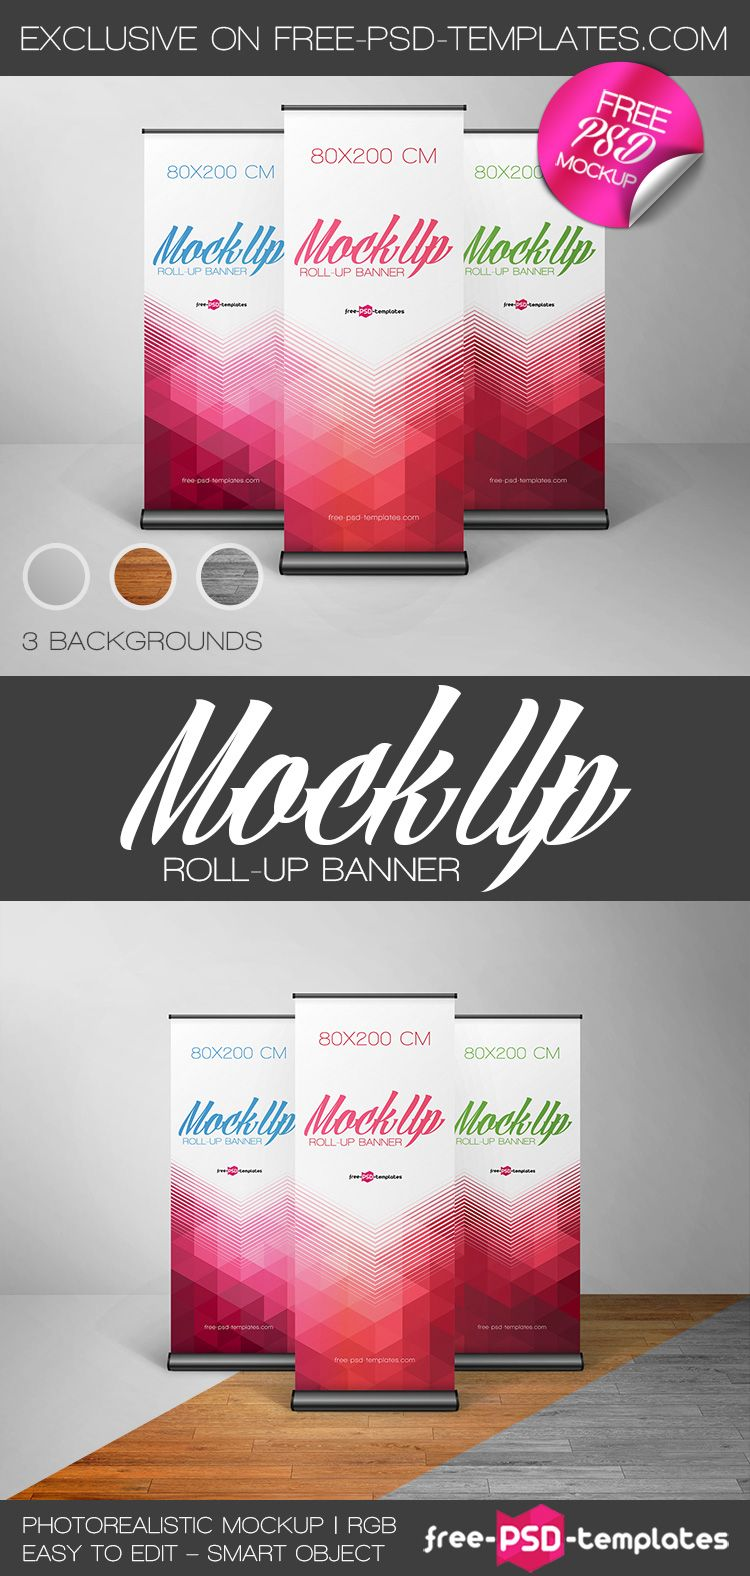 Free Roll-Up Banner in PSD | Free PSD Templates | Graphic Design ...